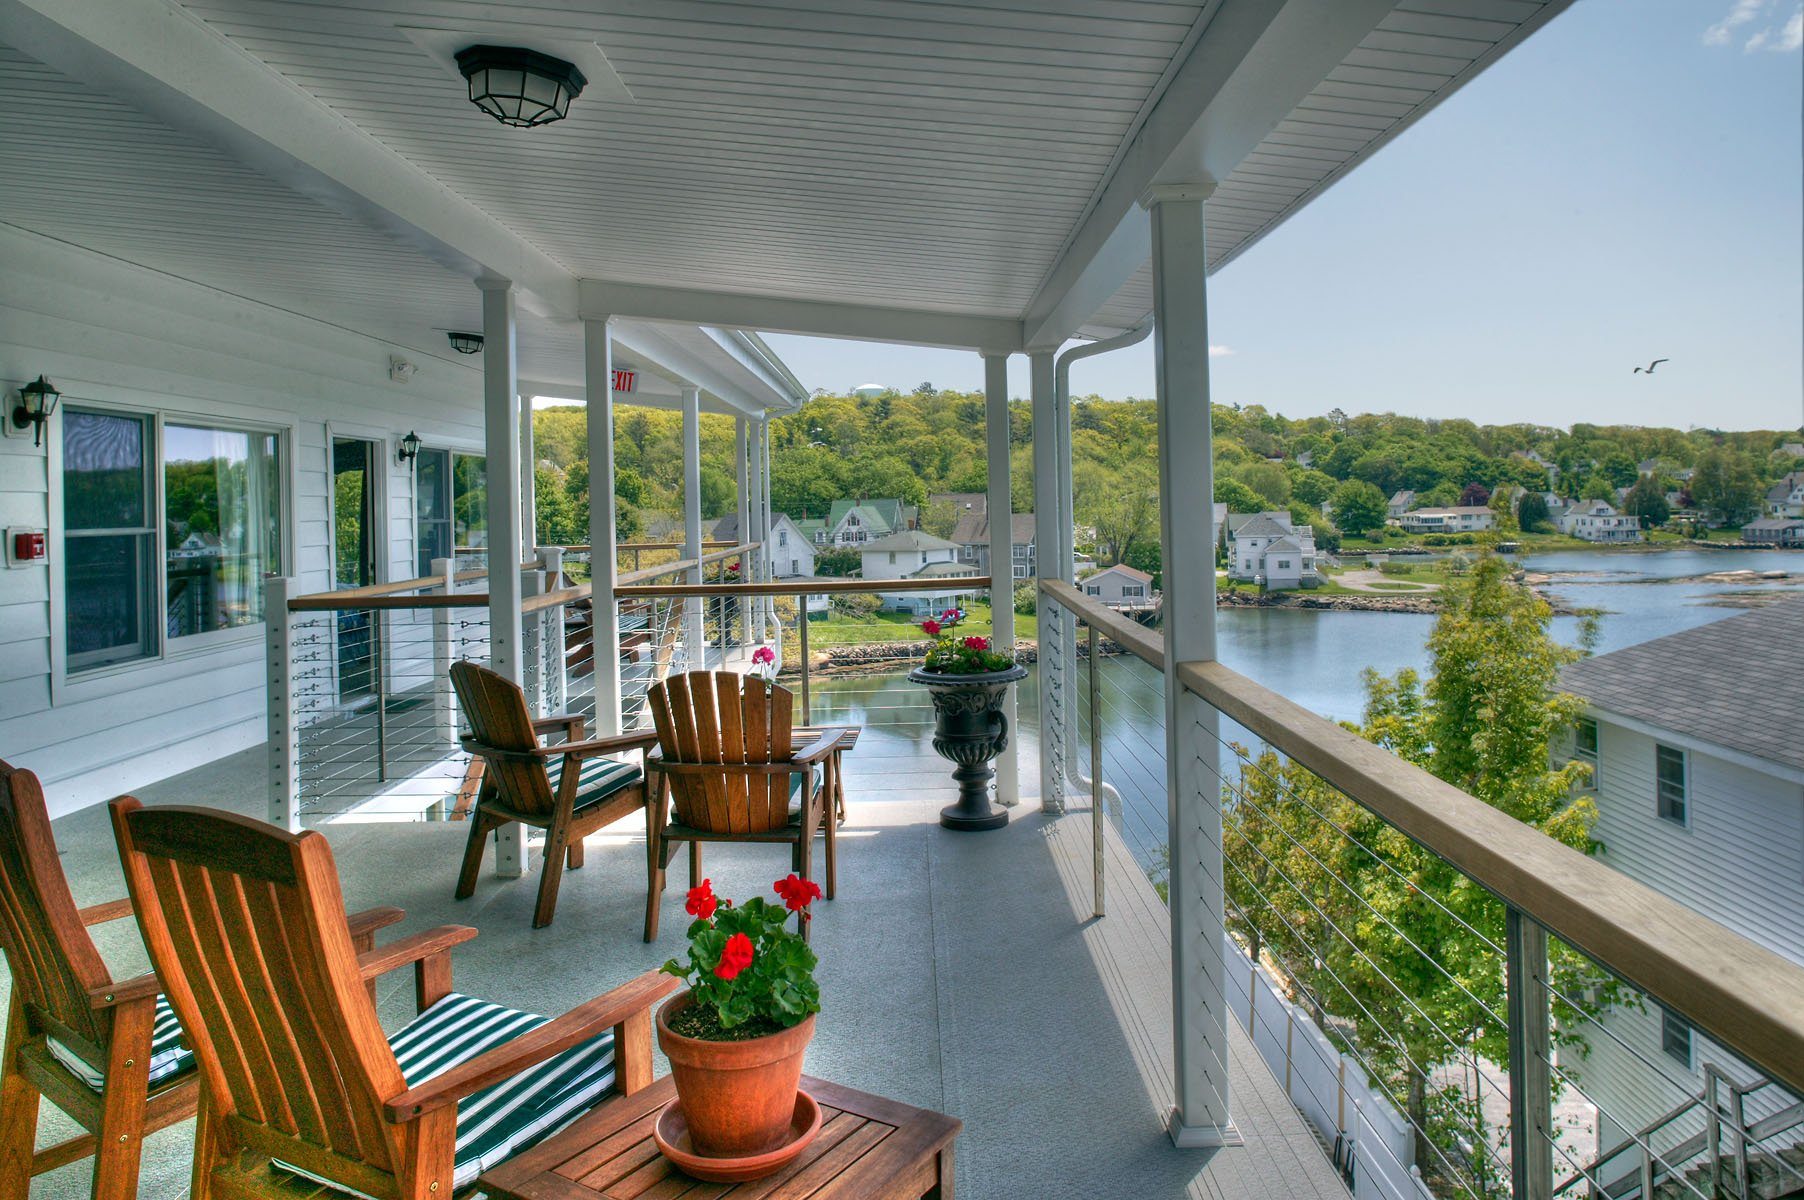 2000 sq' of covered decks for harbor views